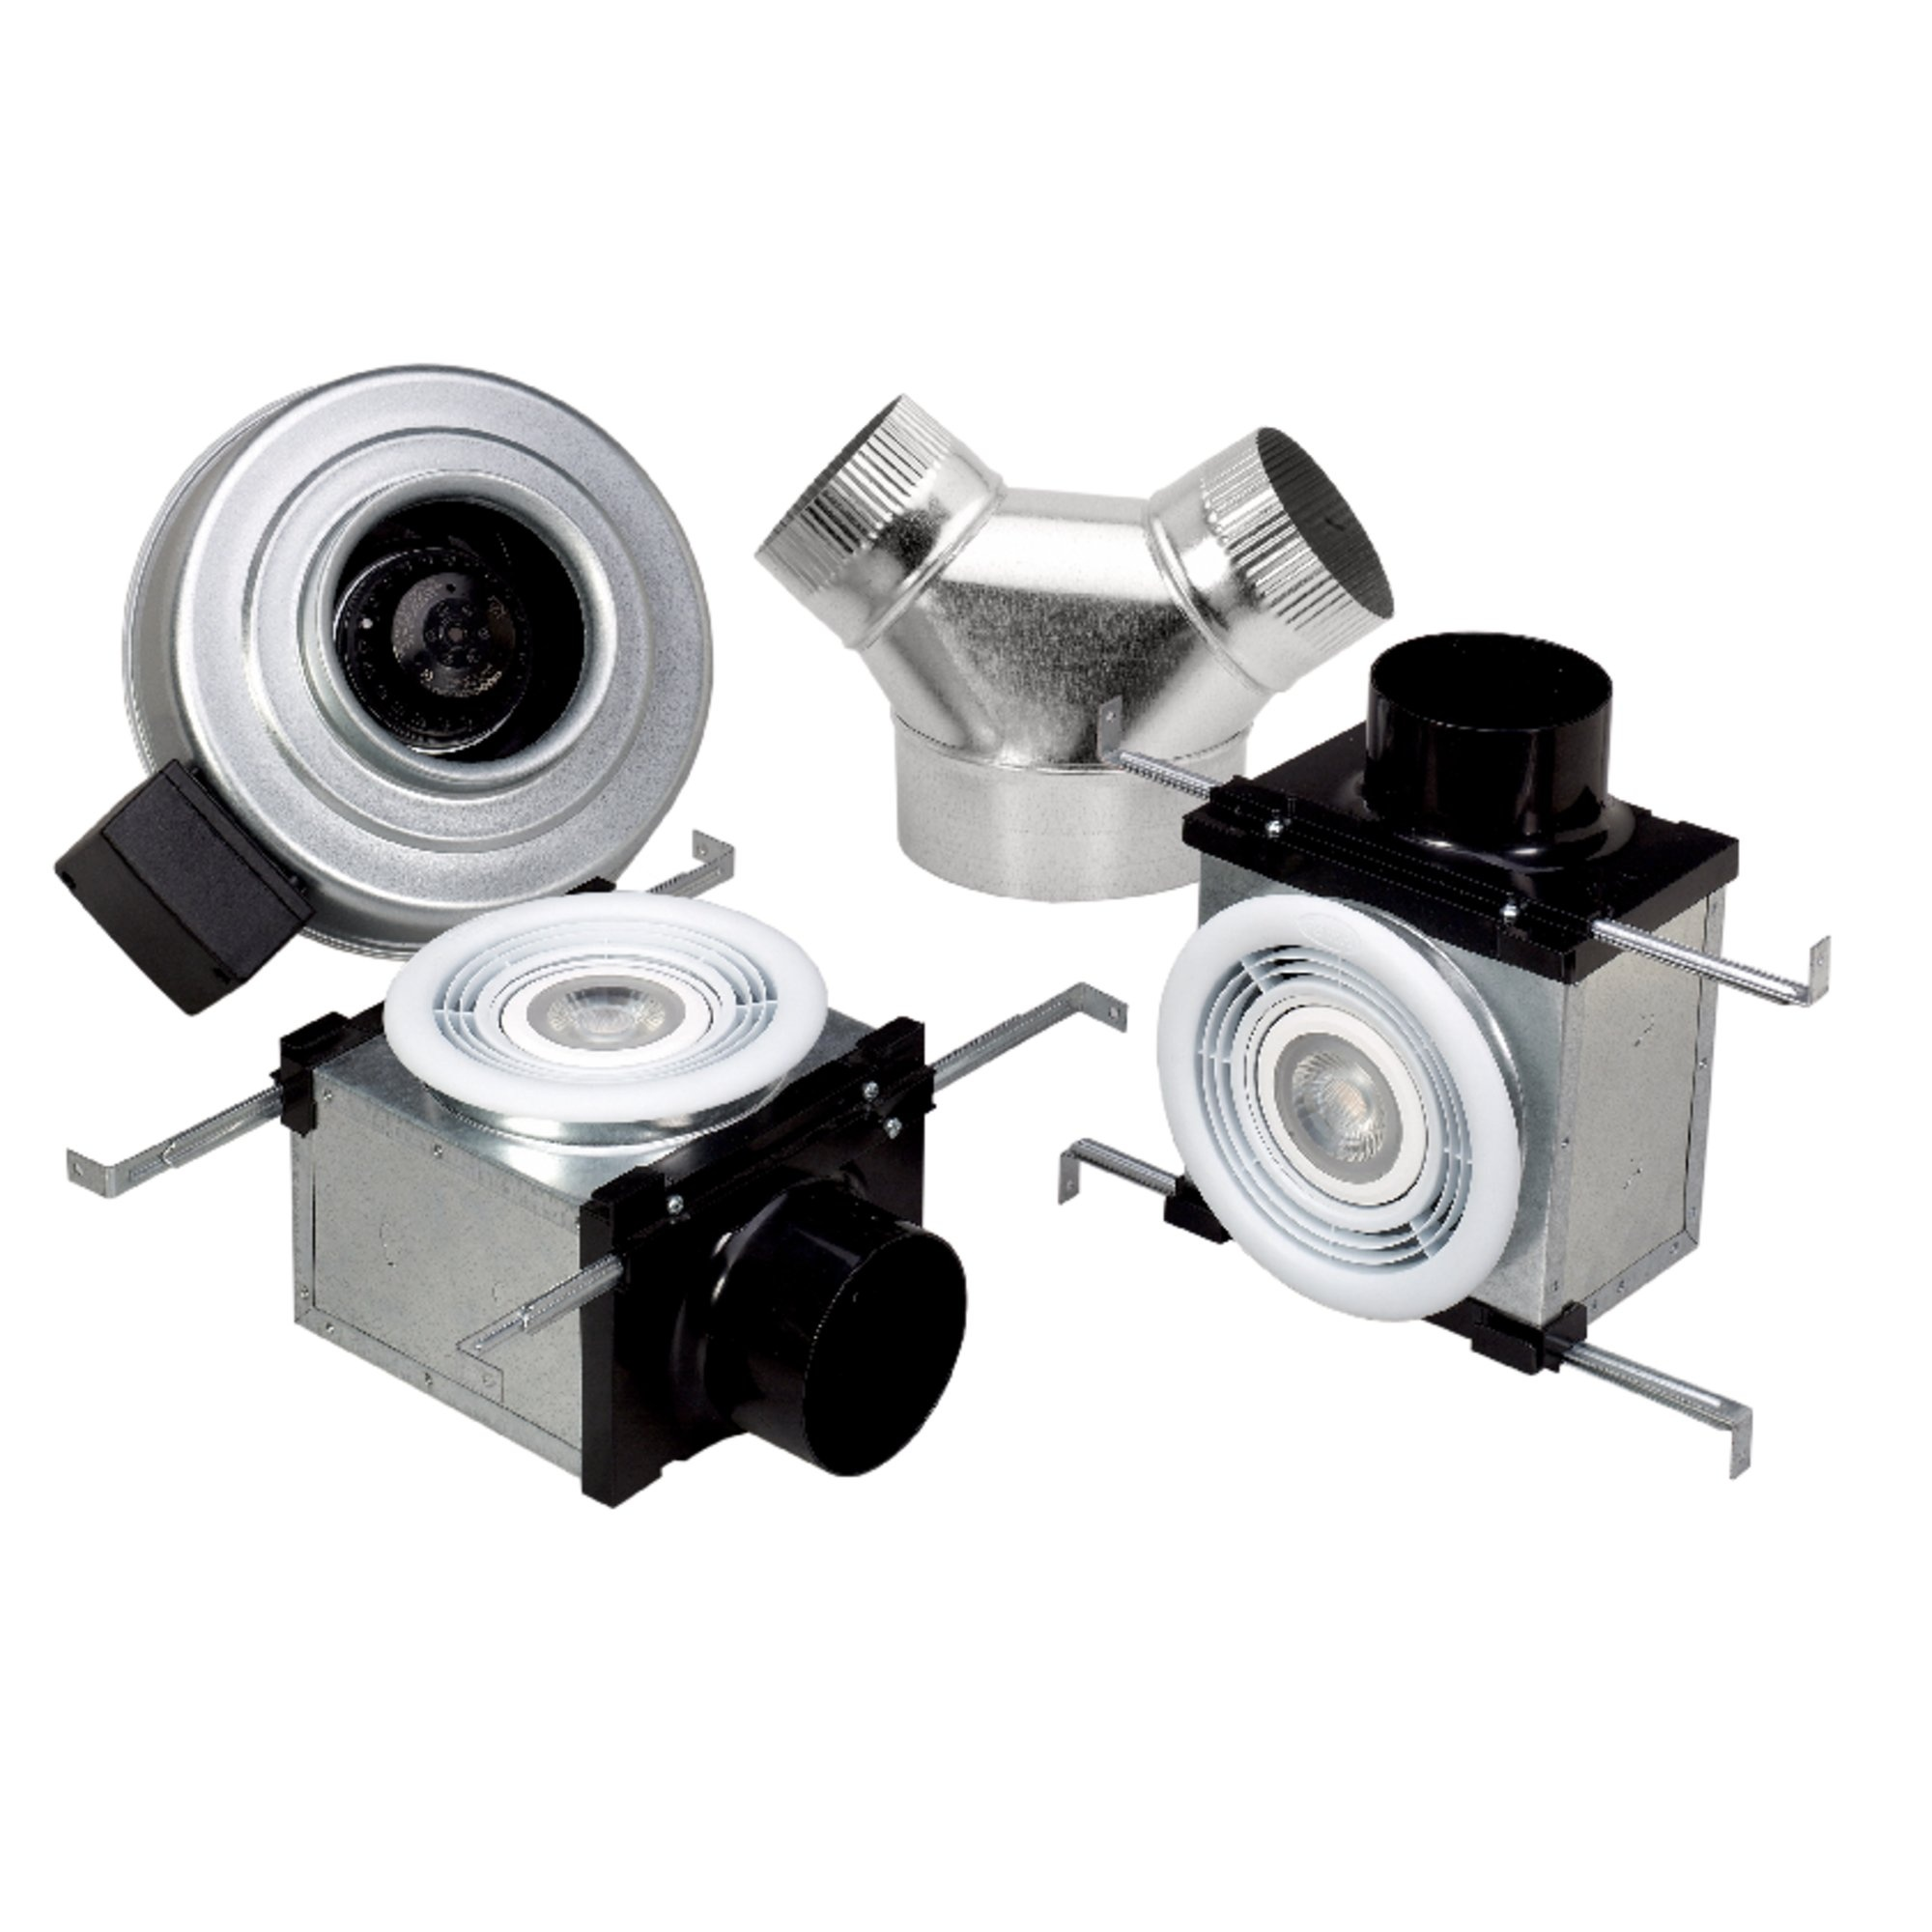 PB270L10-2 Bath Fan w/ 2x LED - Remote mount fans - Fantech